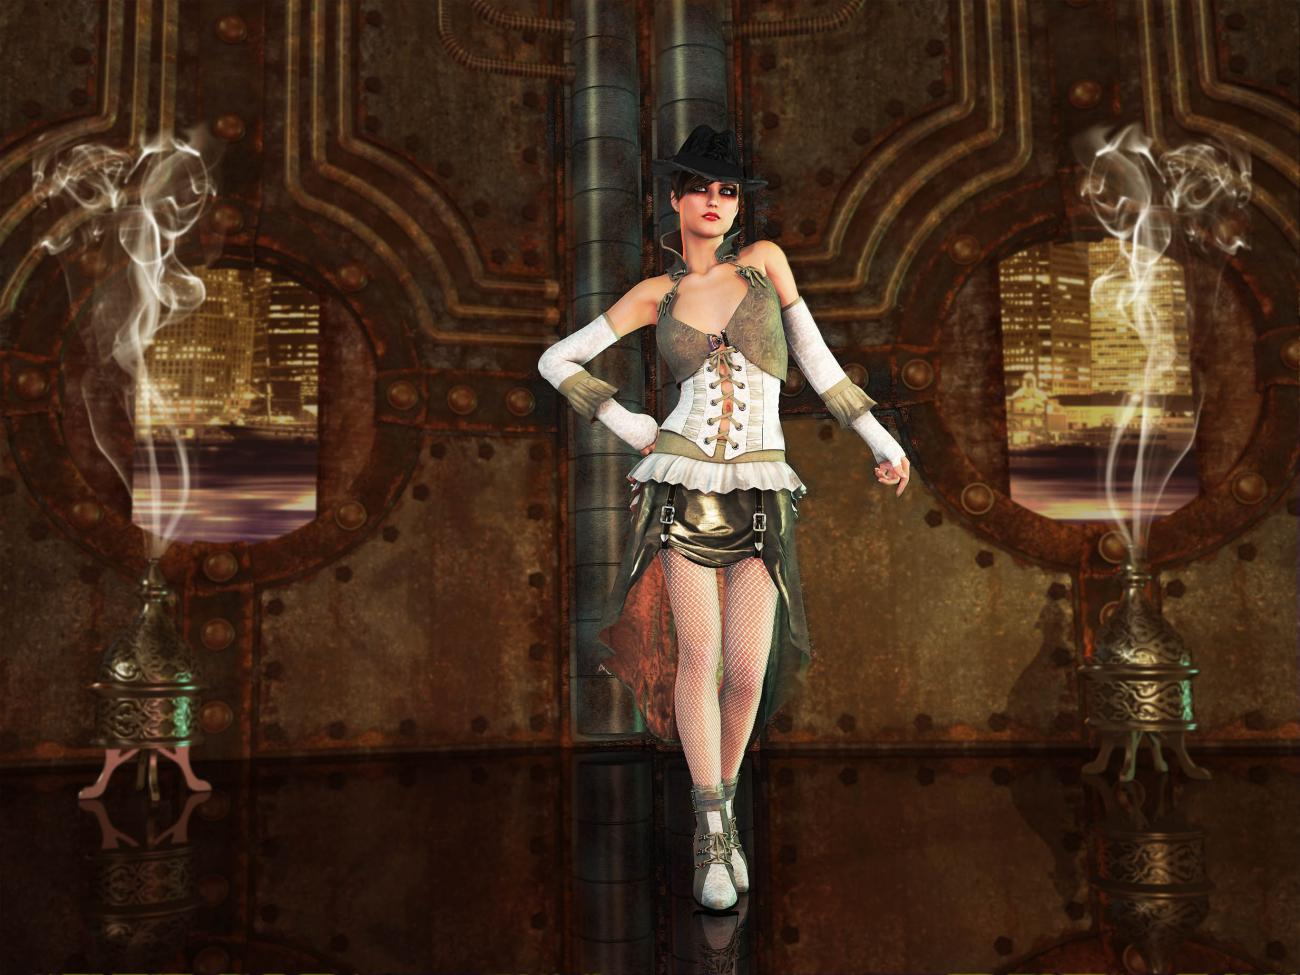 Steam Punk Style - For all born in August